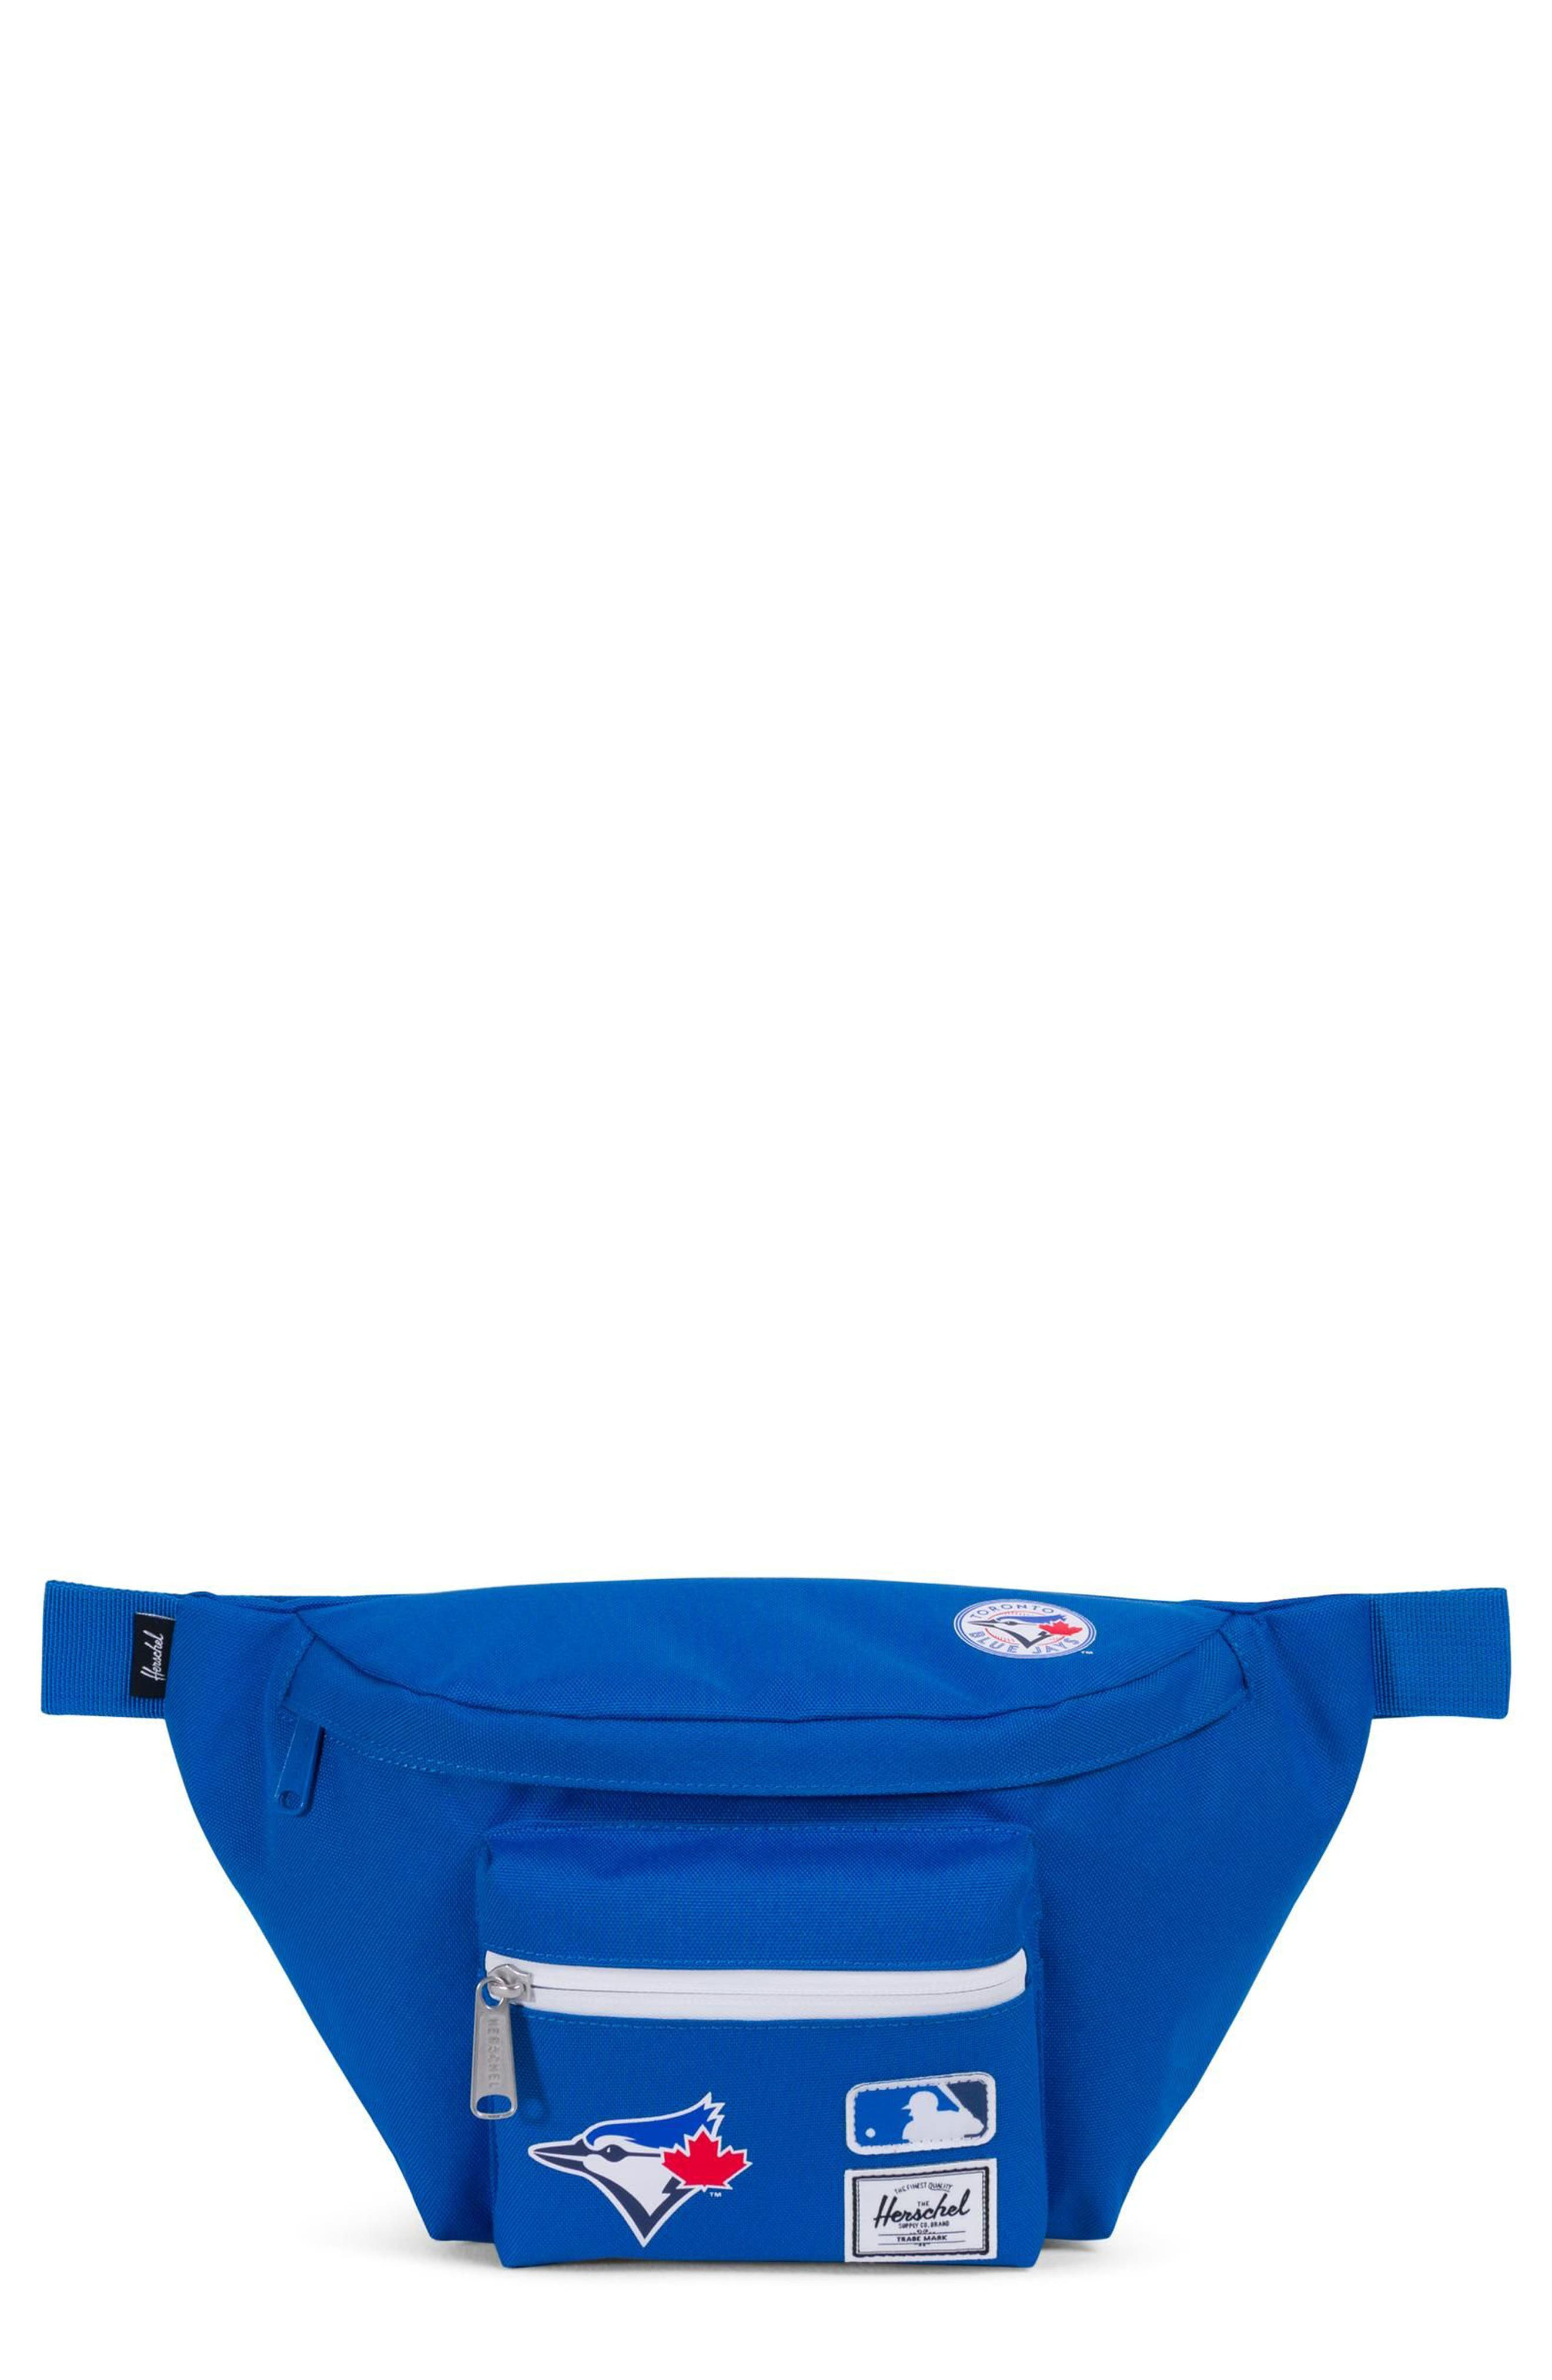 Alternate Image 1 Selected - Herschel Supply Co. MLB American League Hip Pack